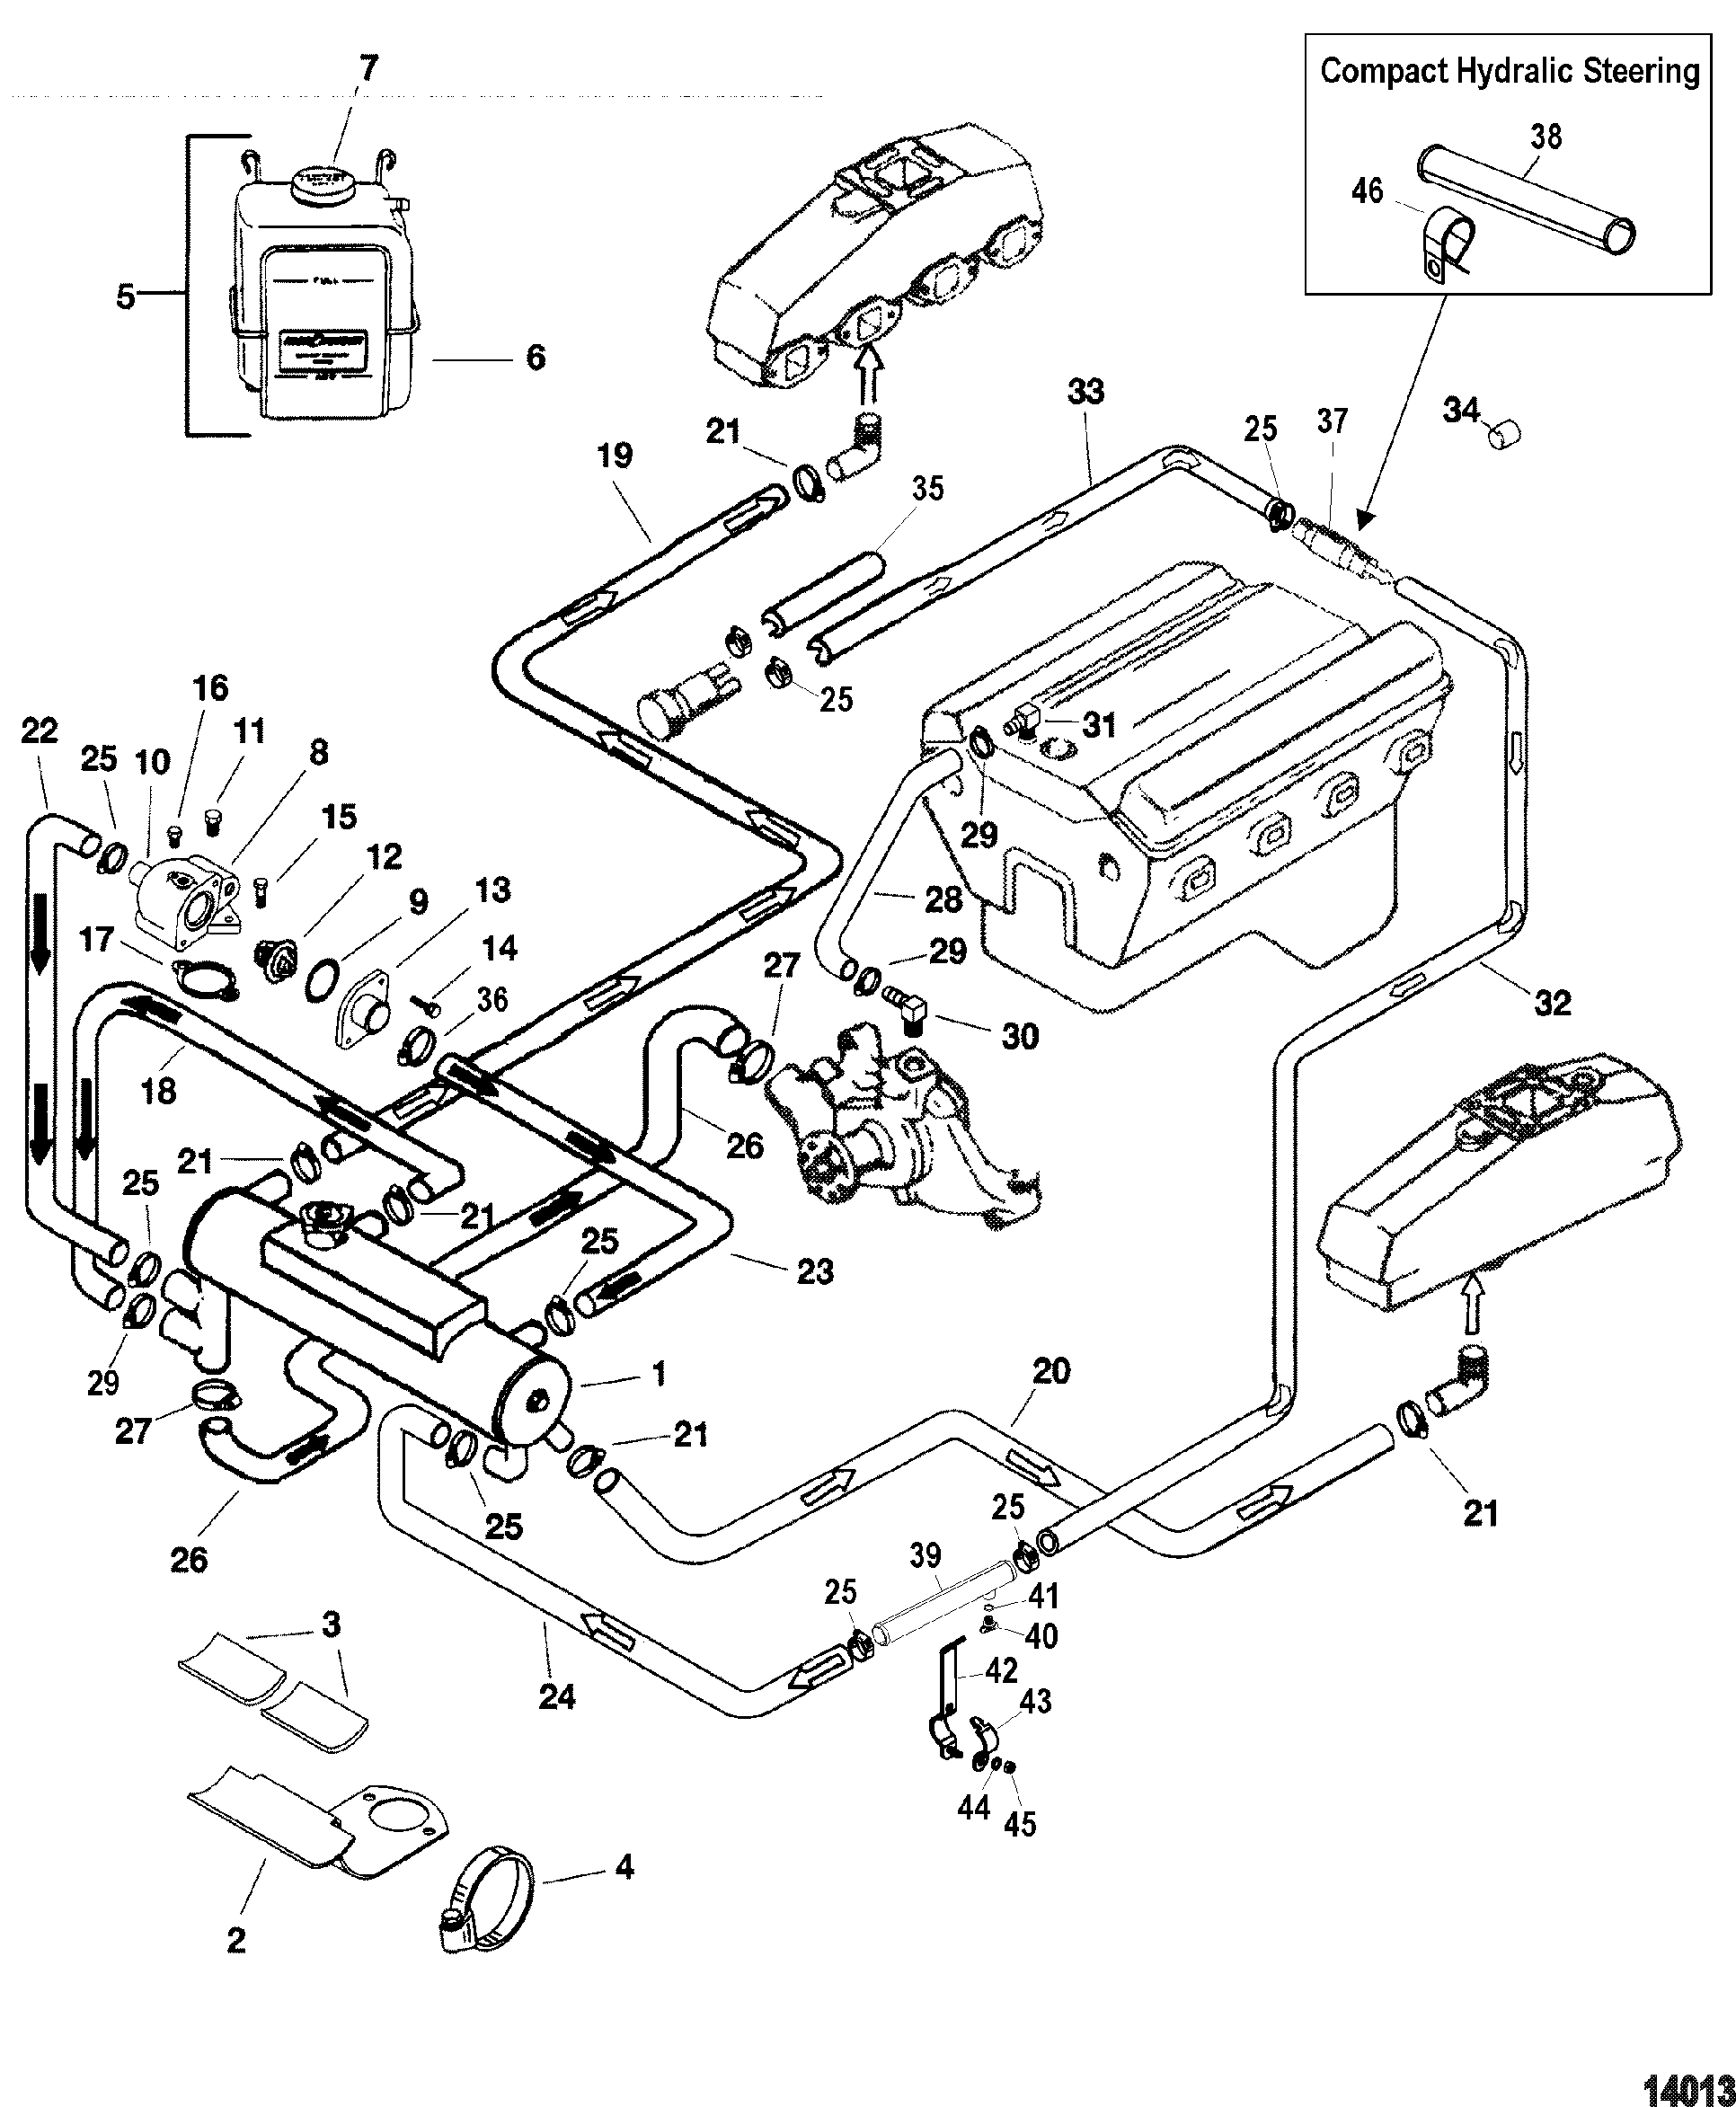 399483429421404679 besides T12511038 Engine speed sensor diagram location as well P 0900c152800c2d3a also 1977 Corvette Windshield Wiper Wiring Diagram together with 67ggn Gm C2500 2006 Lbz Duramax 4x4 Lost  m Tcm Truck. on audi a4 wiring harness